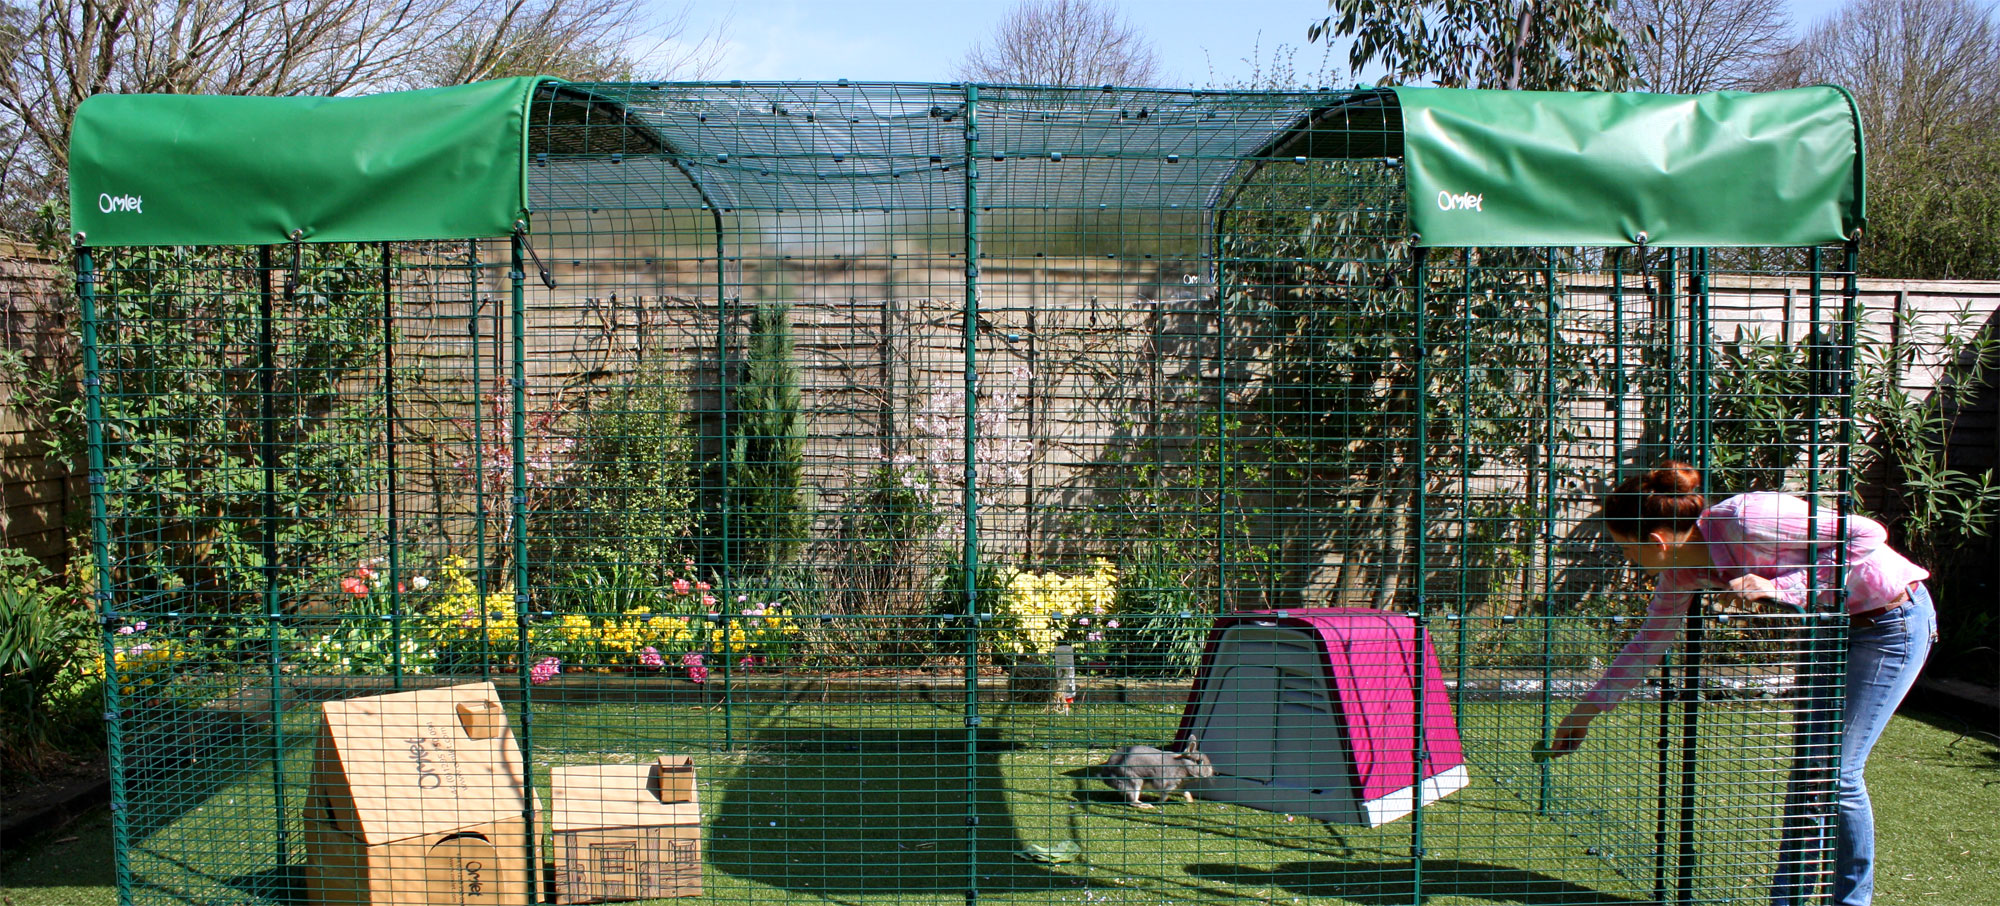 An extended 9ft x 13ft x 6ft Outdoor Rabbit Run will give your pet rabbits a lot of space to hop around in.